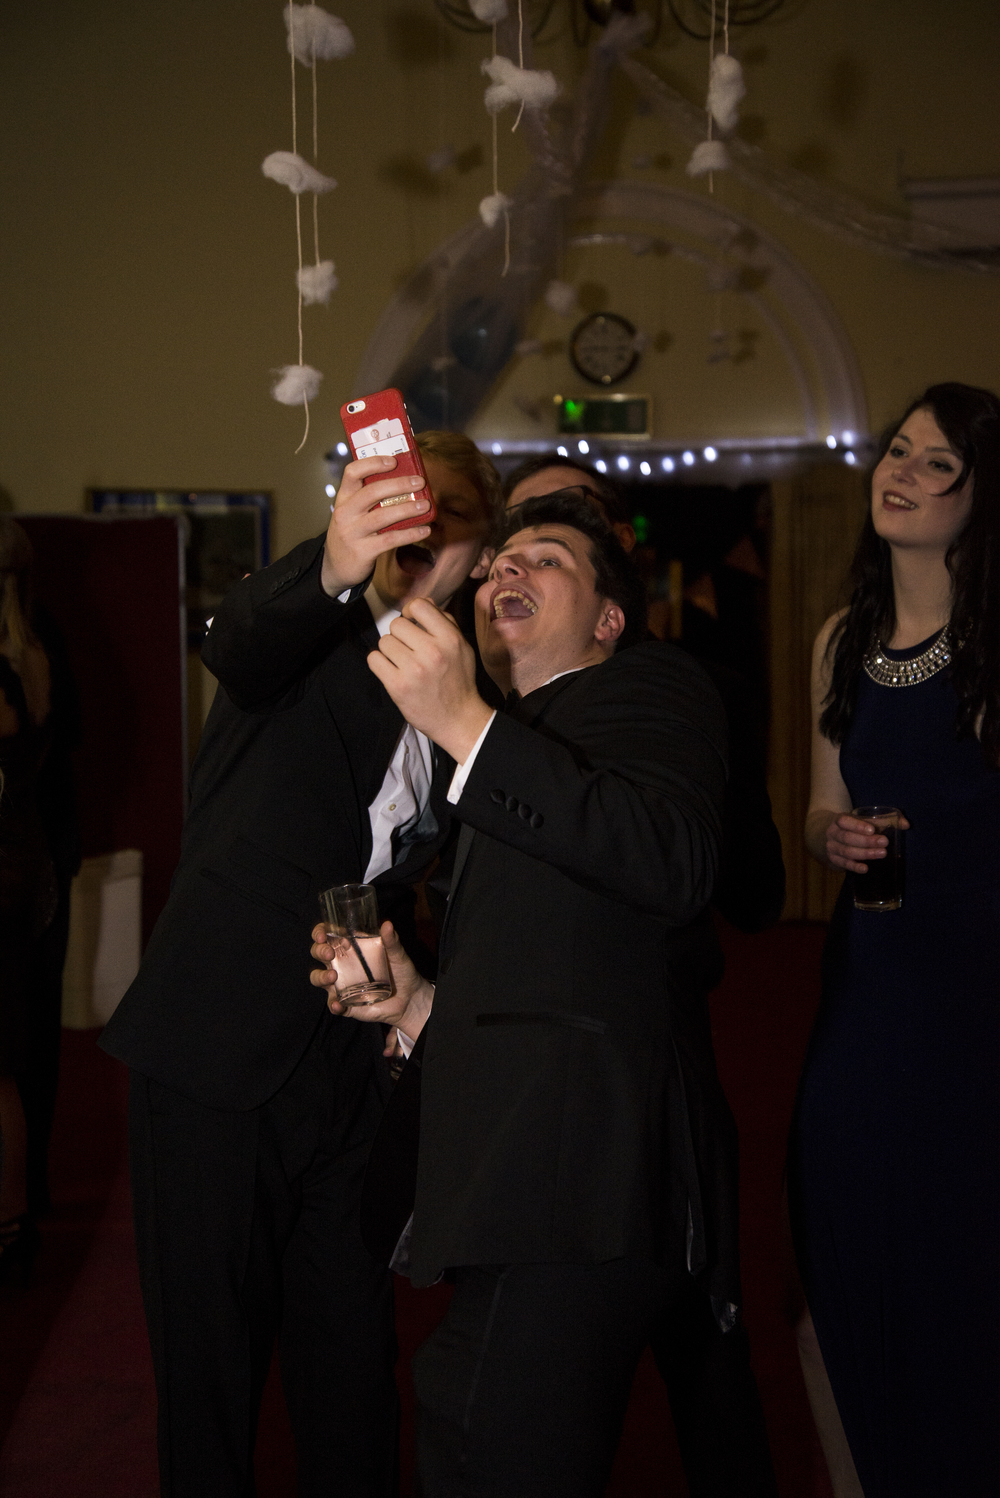 SAUS_winter_ball12121527.jpg